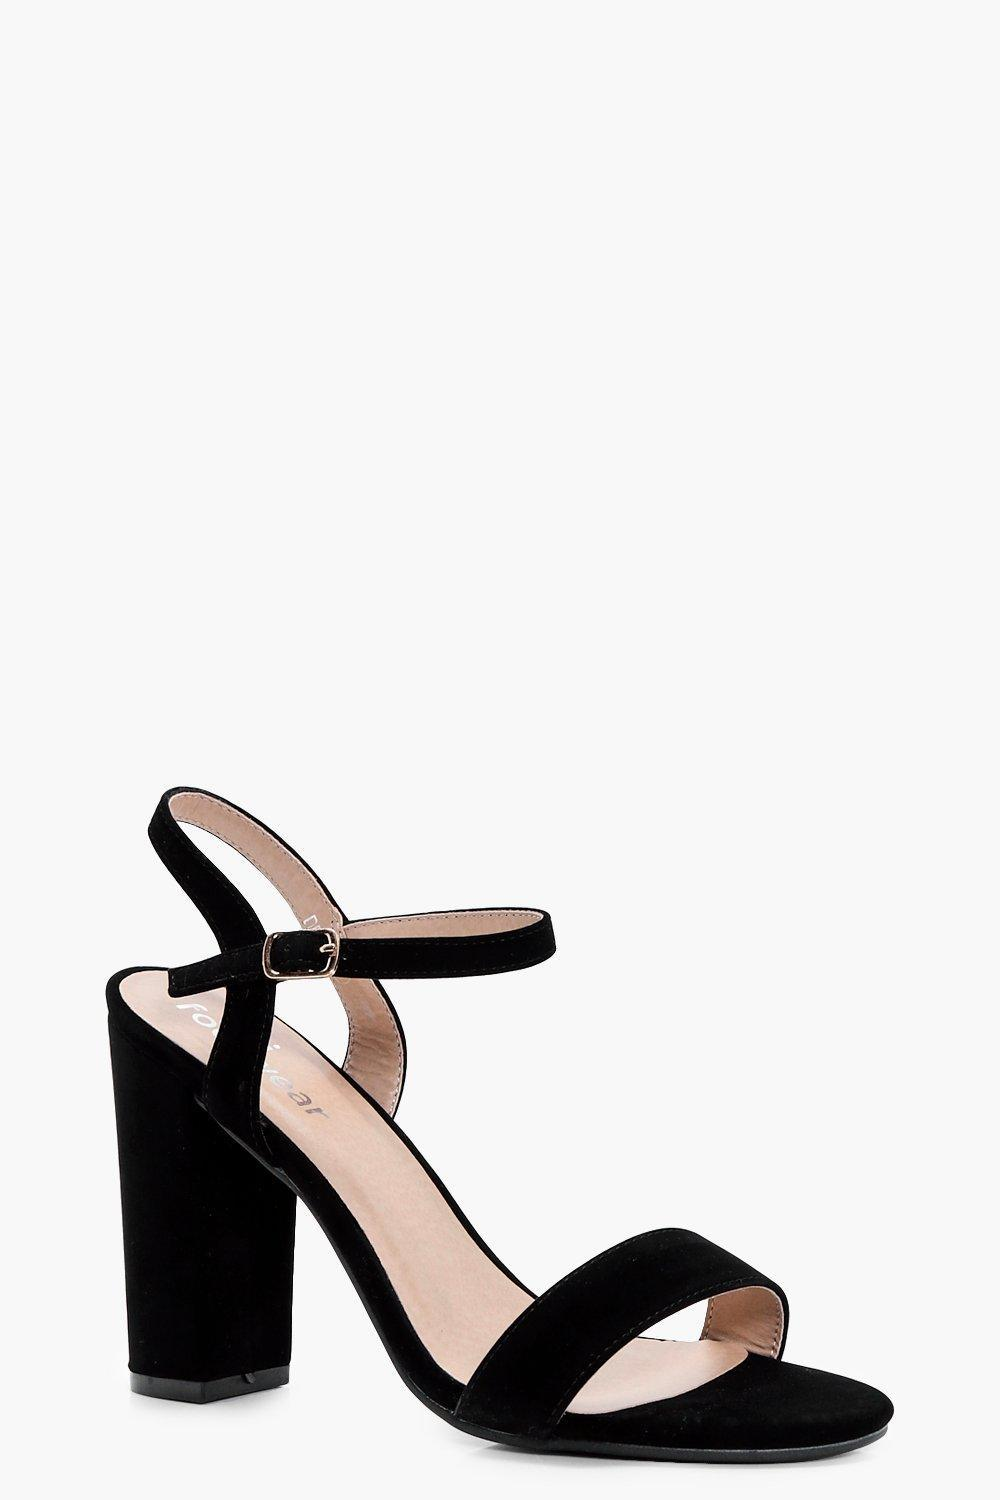 6bff88690a9 Lyst - Boohoo Block Heel Barely There Heels in Black